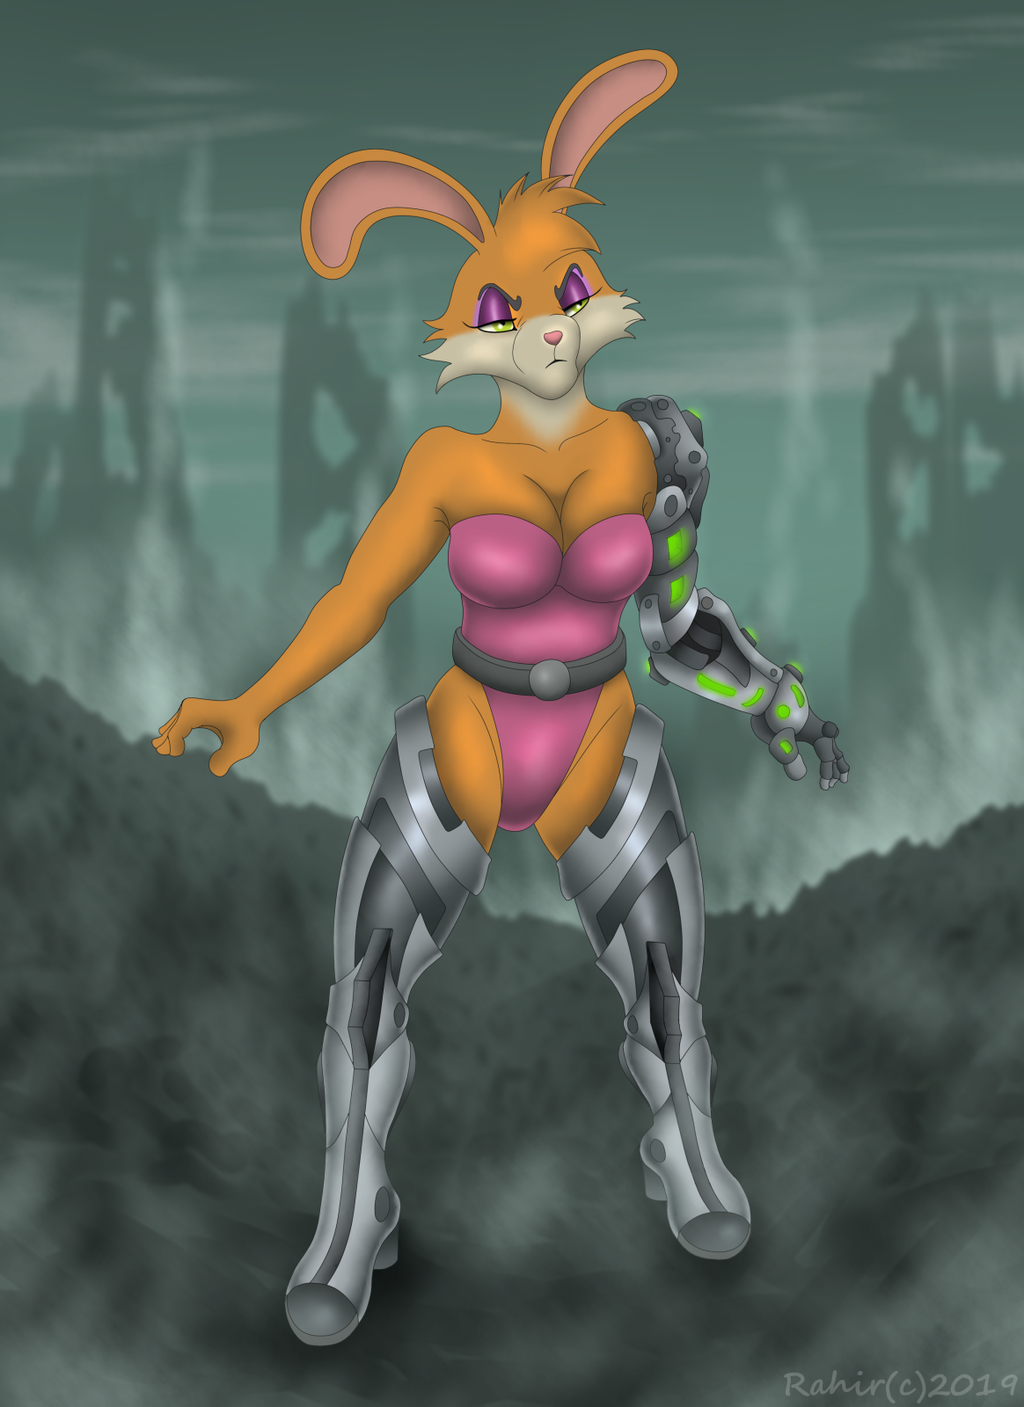 Most recent image: Bunny Rabbot